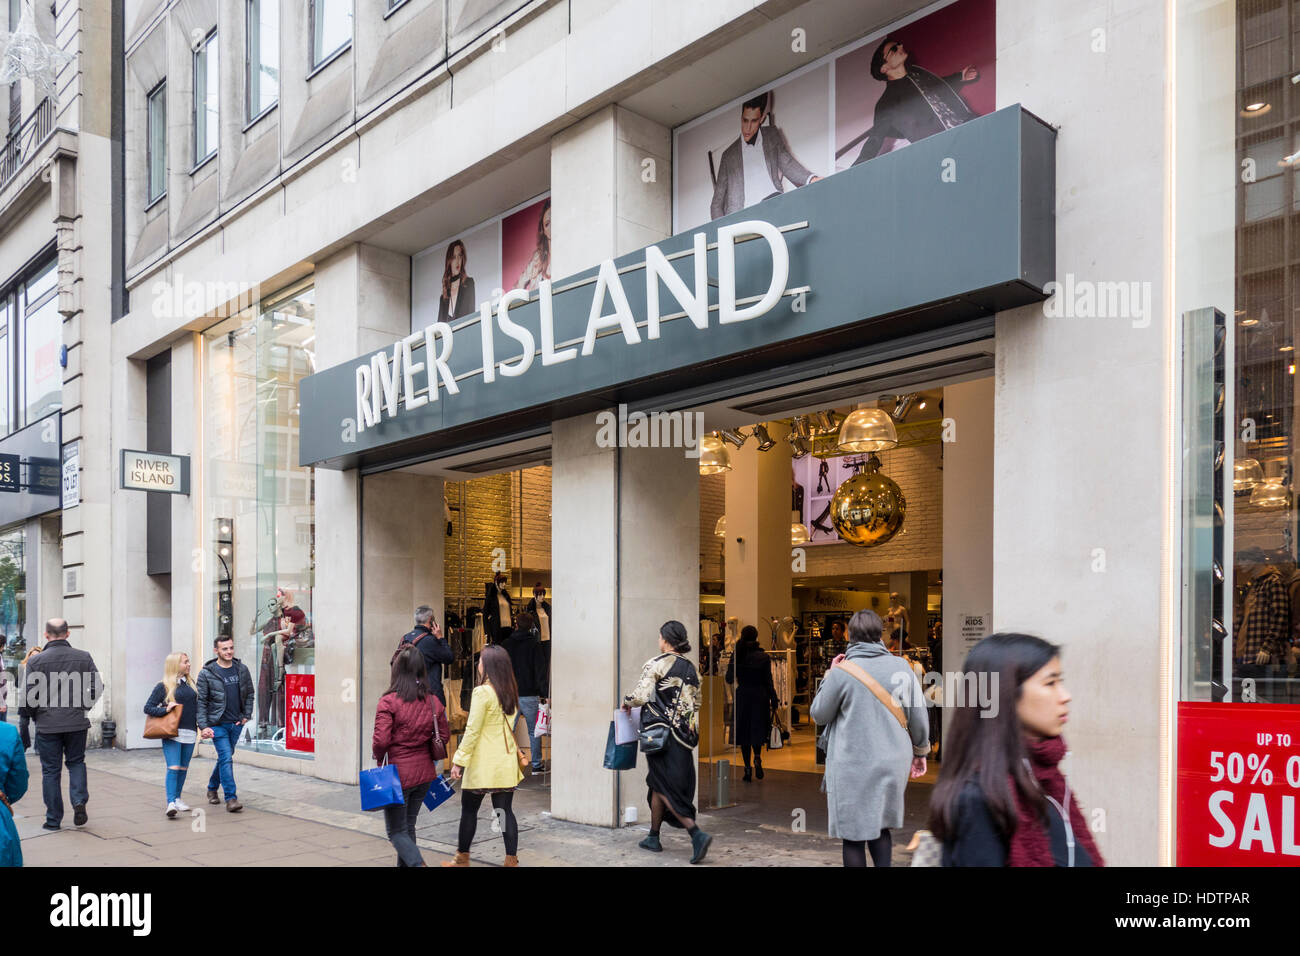 River Island store, Oxford Street, London, UK Stock Photo